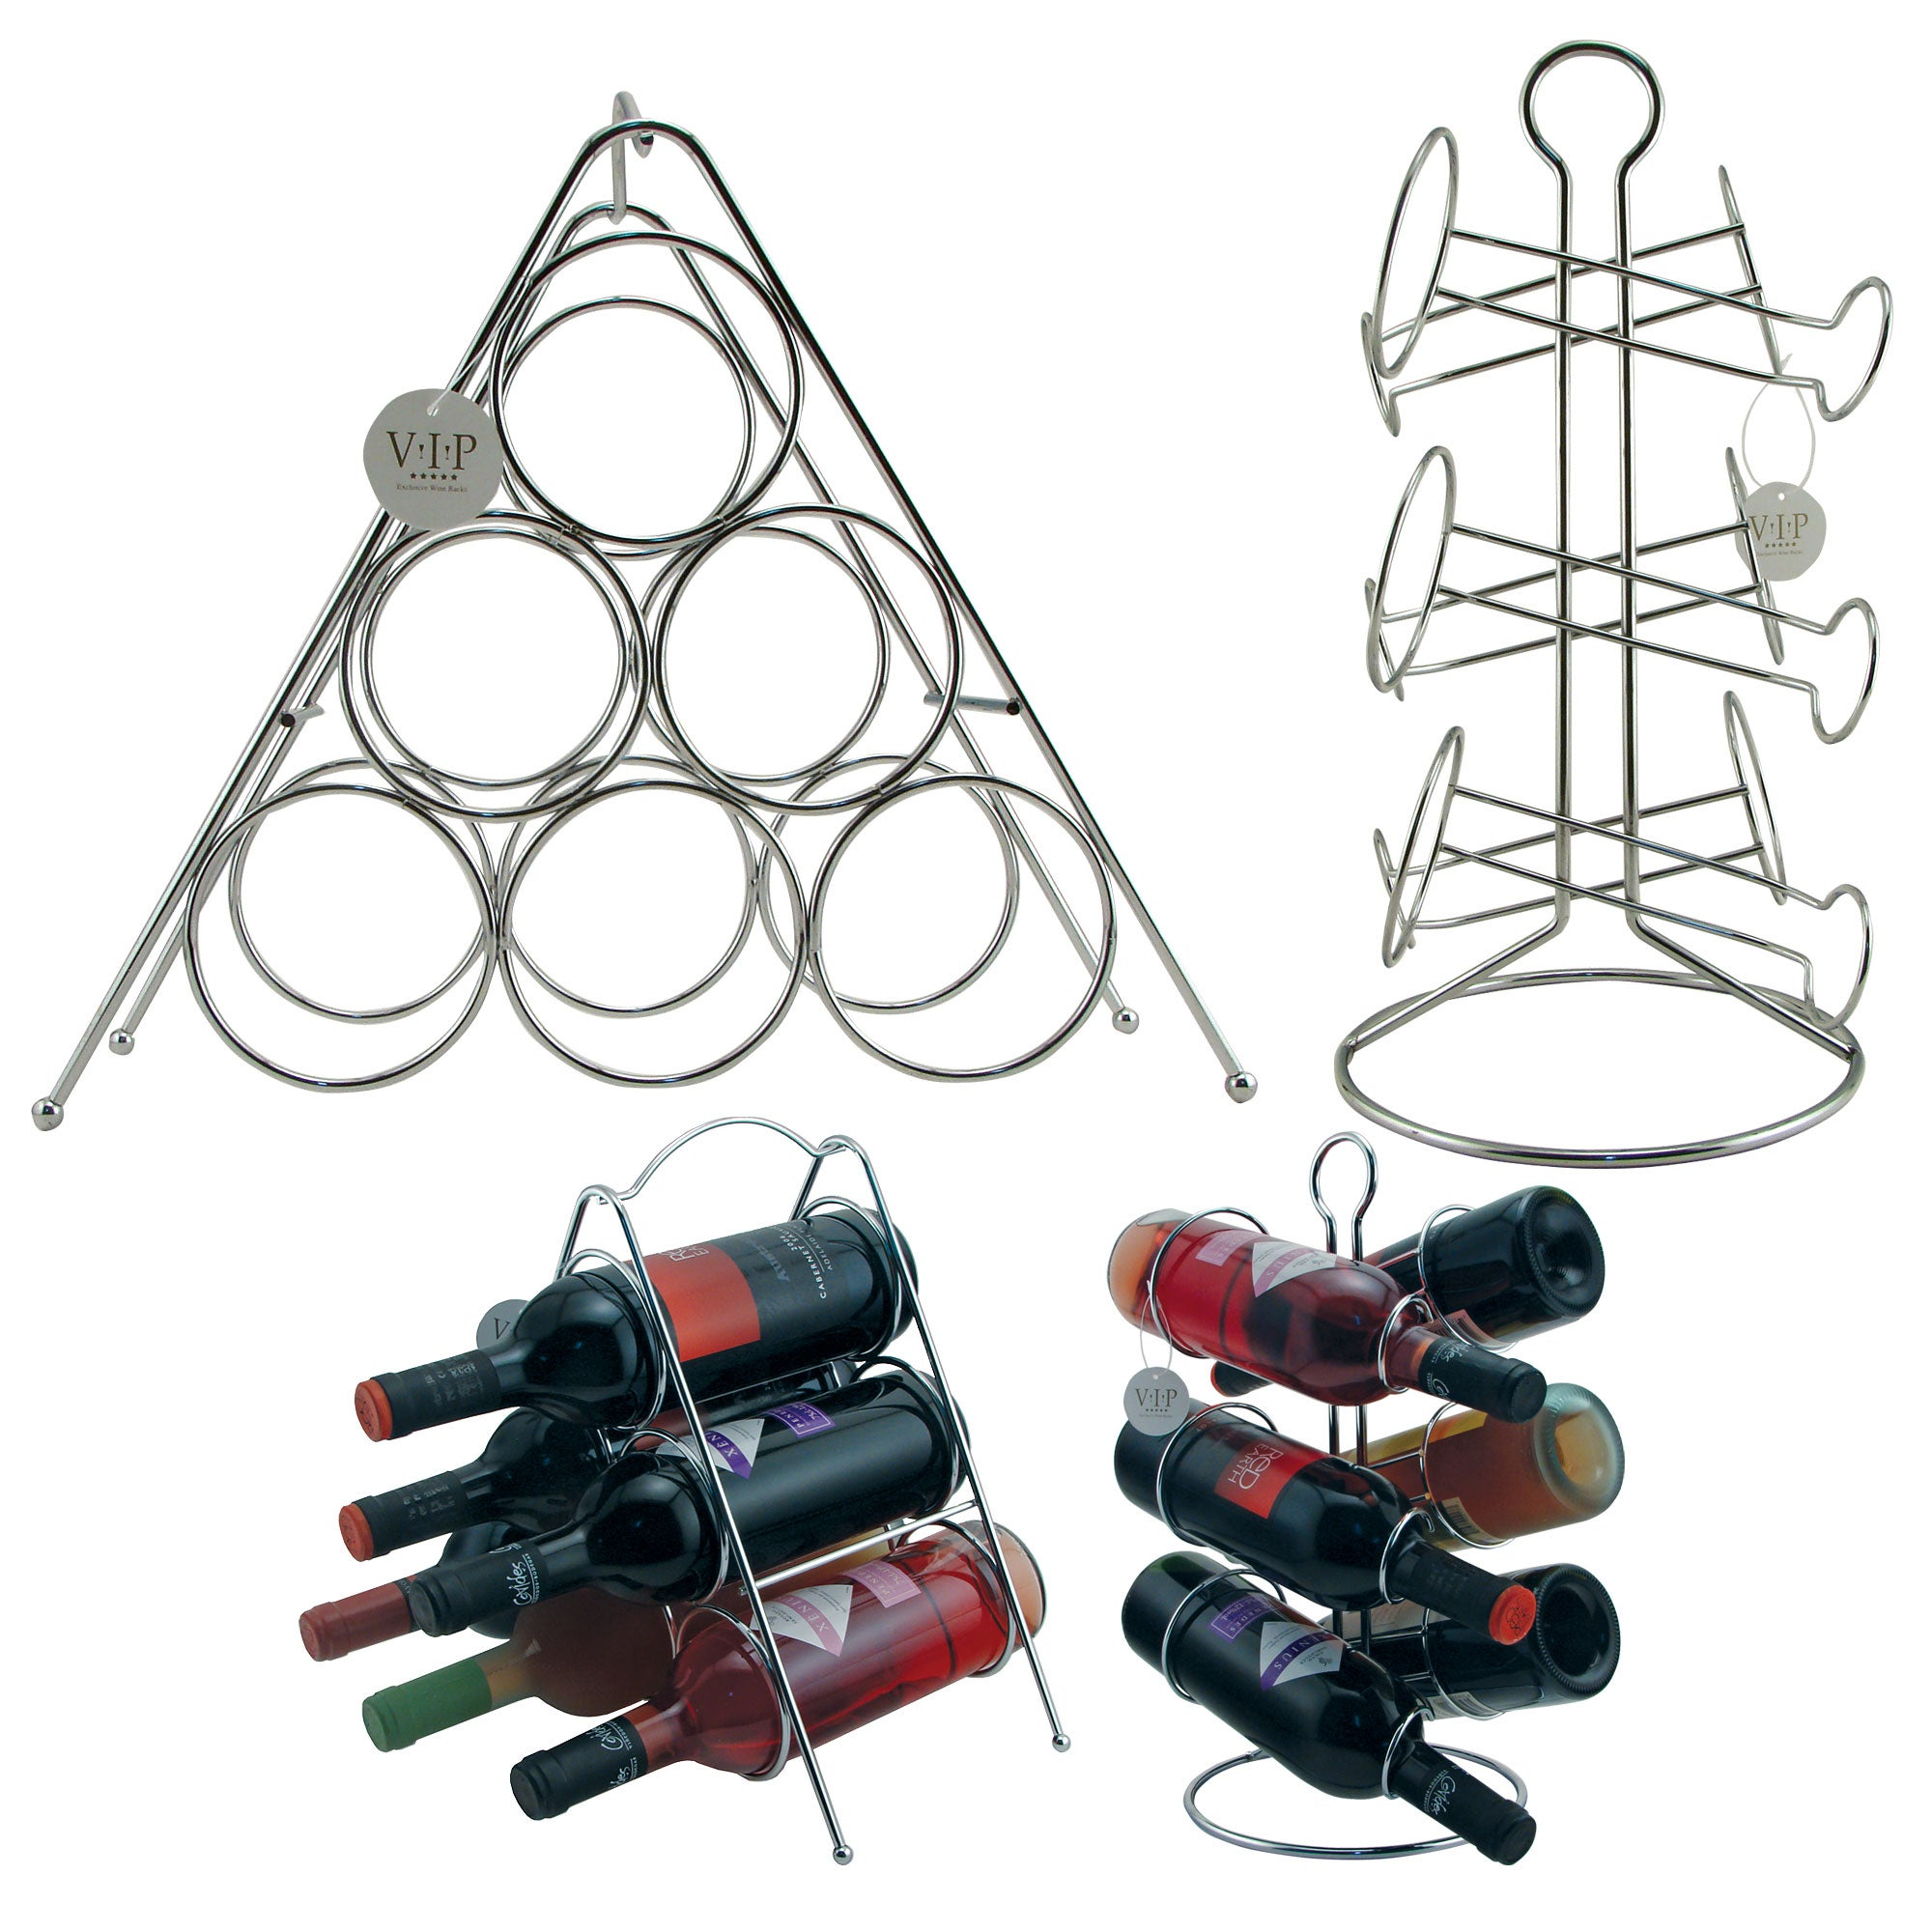 tabletop and shelfstyle metal wine racks set of two - Metal Wine Rack